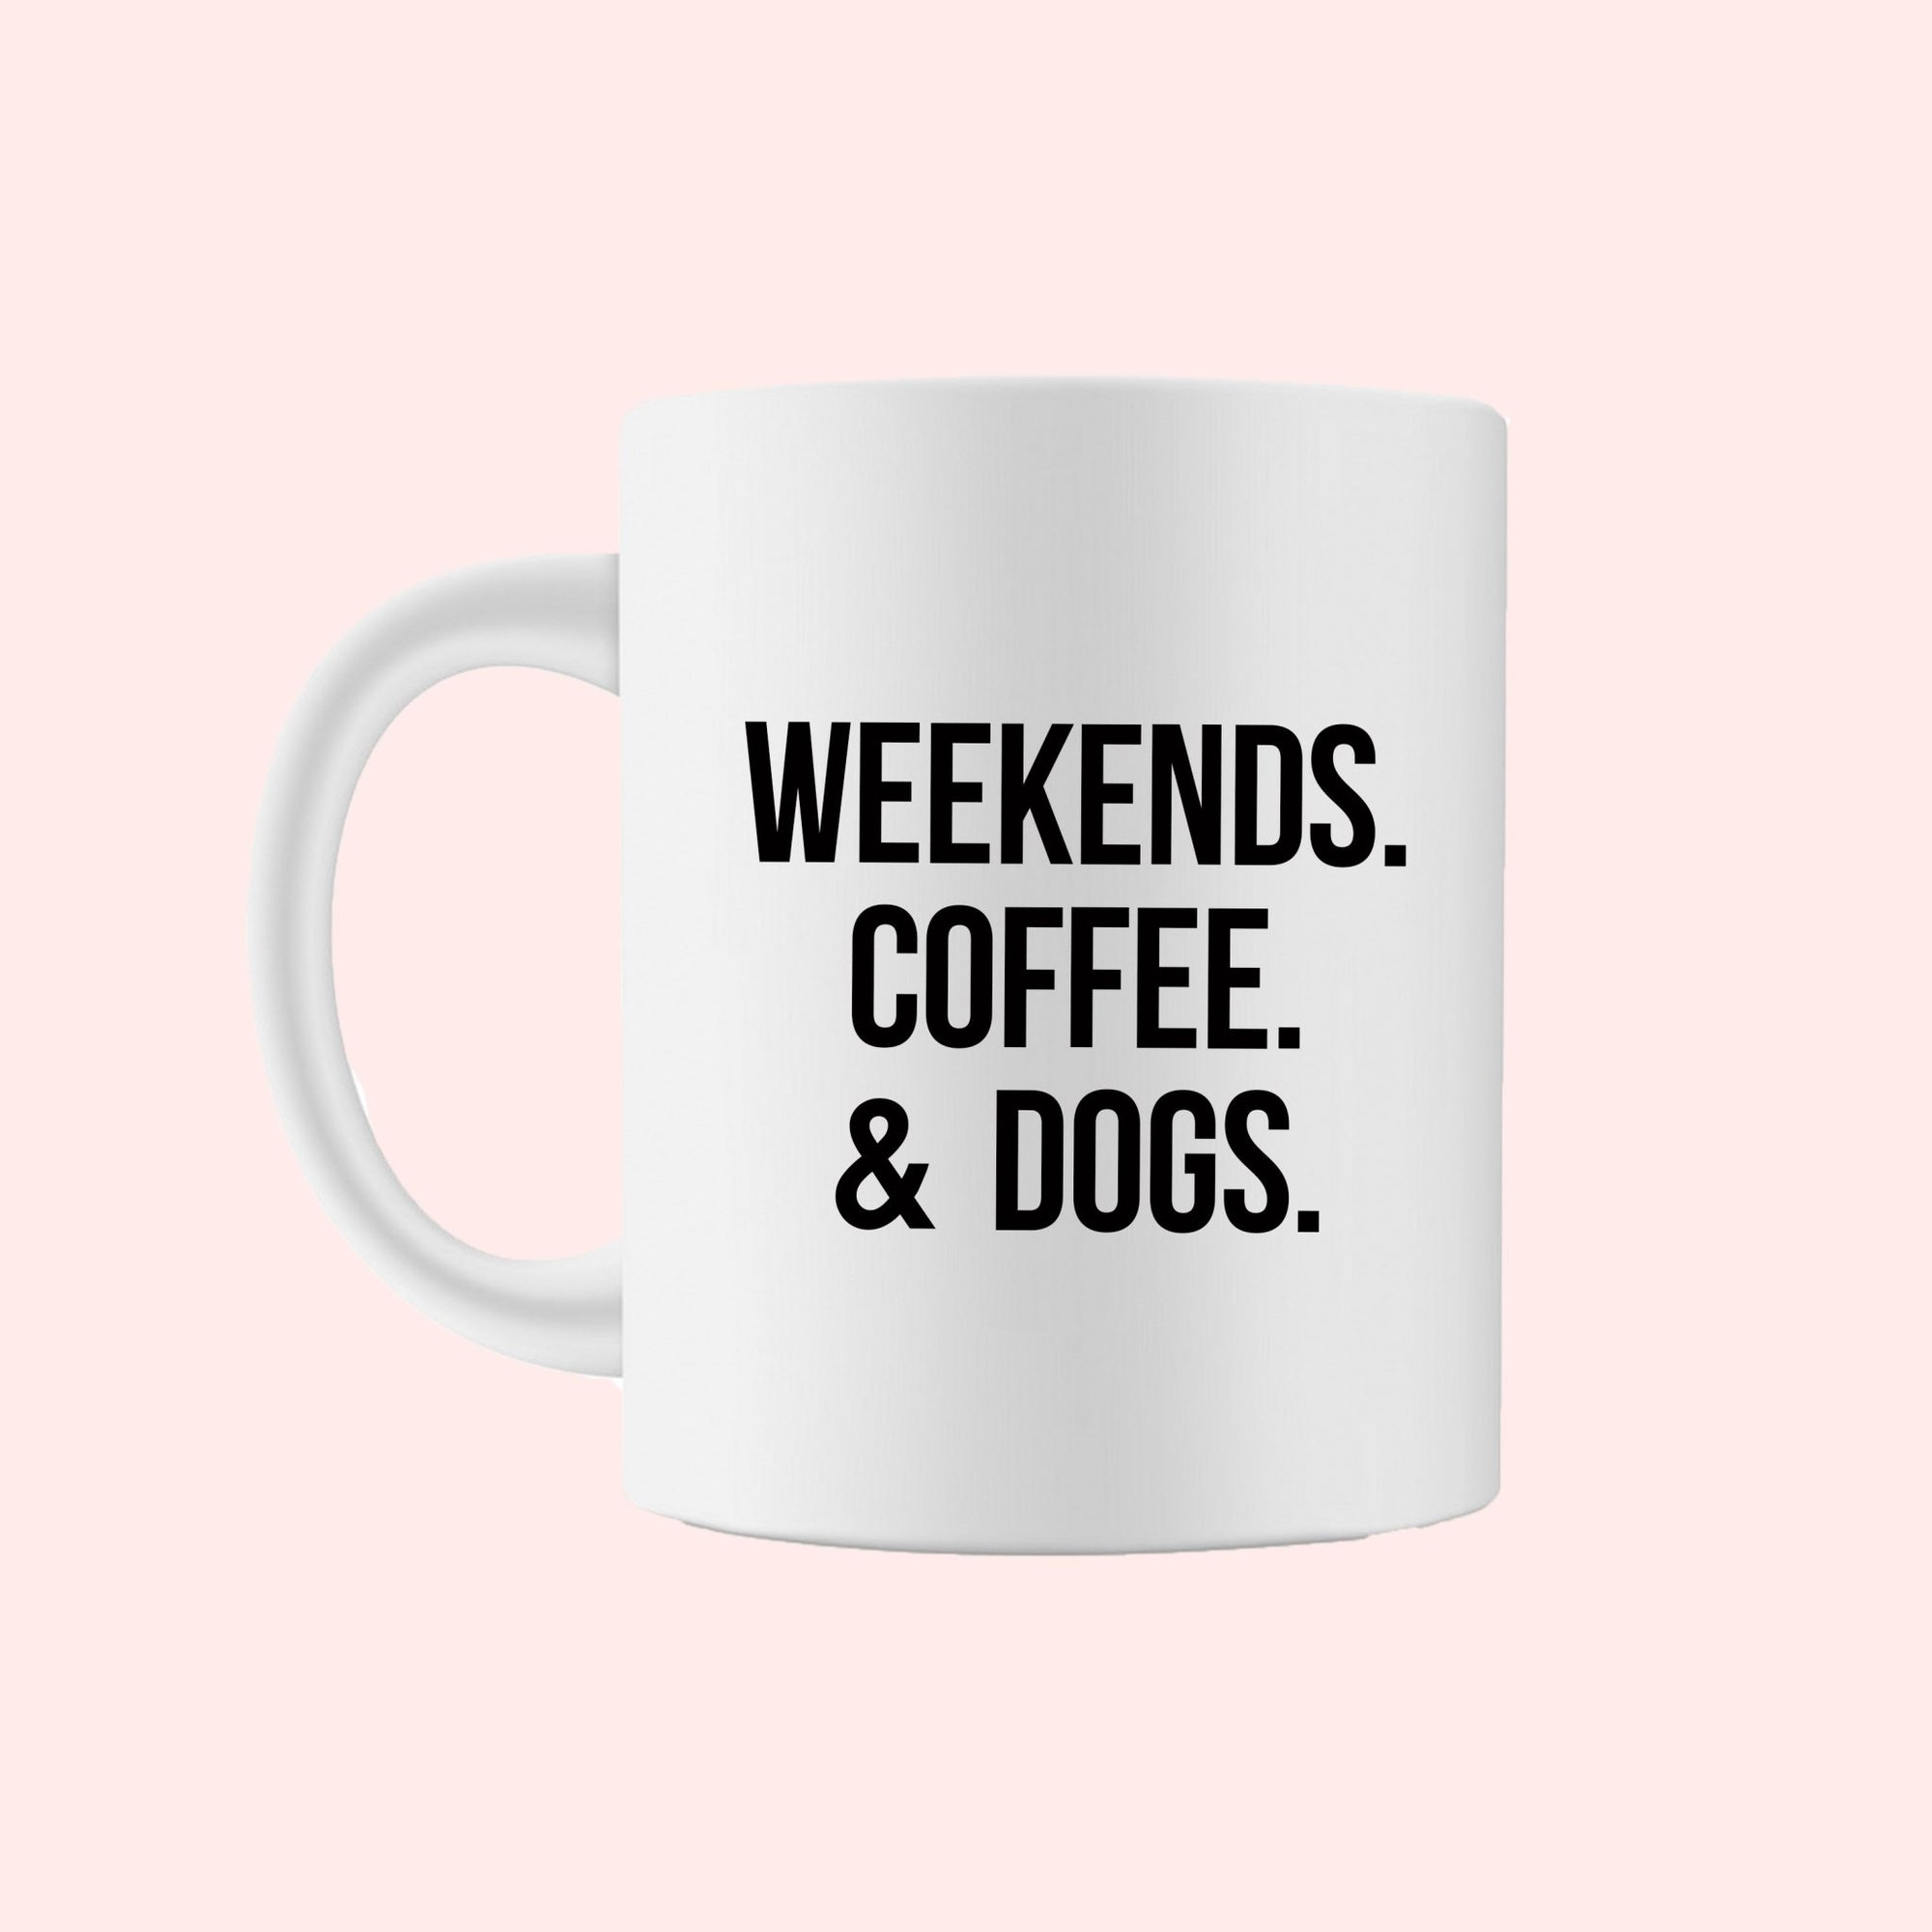 Weekends Coffee & Dogs Mug - Sprinkled With Pink #bachelorette #custom #gifts